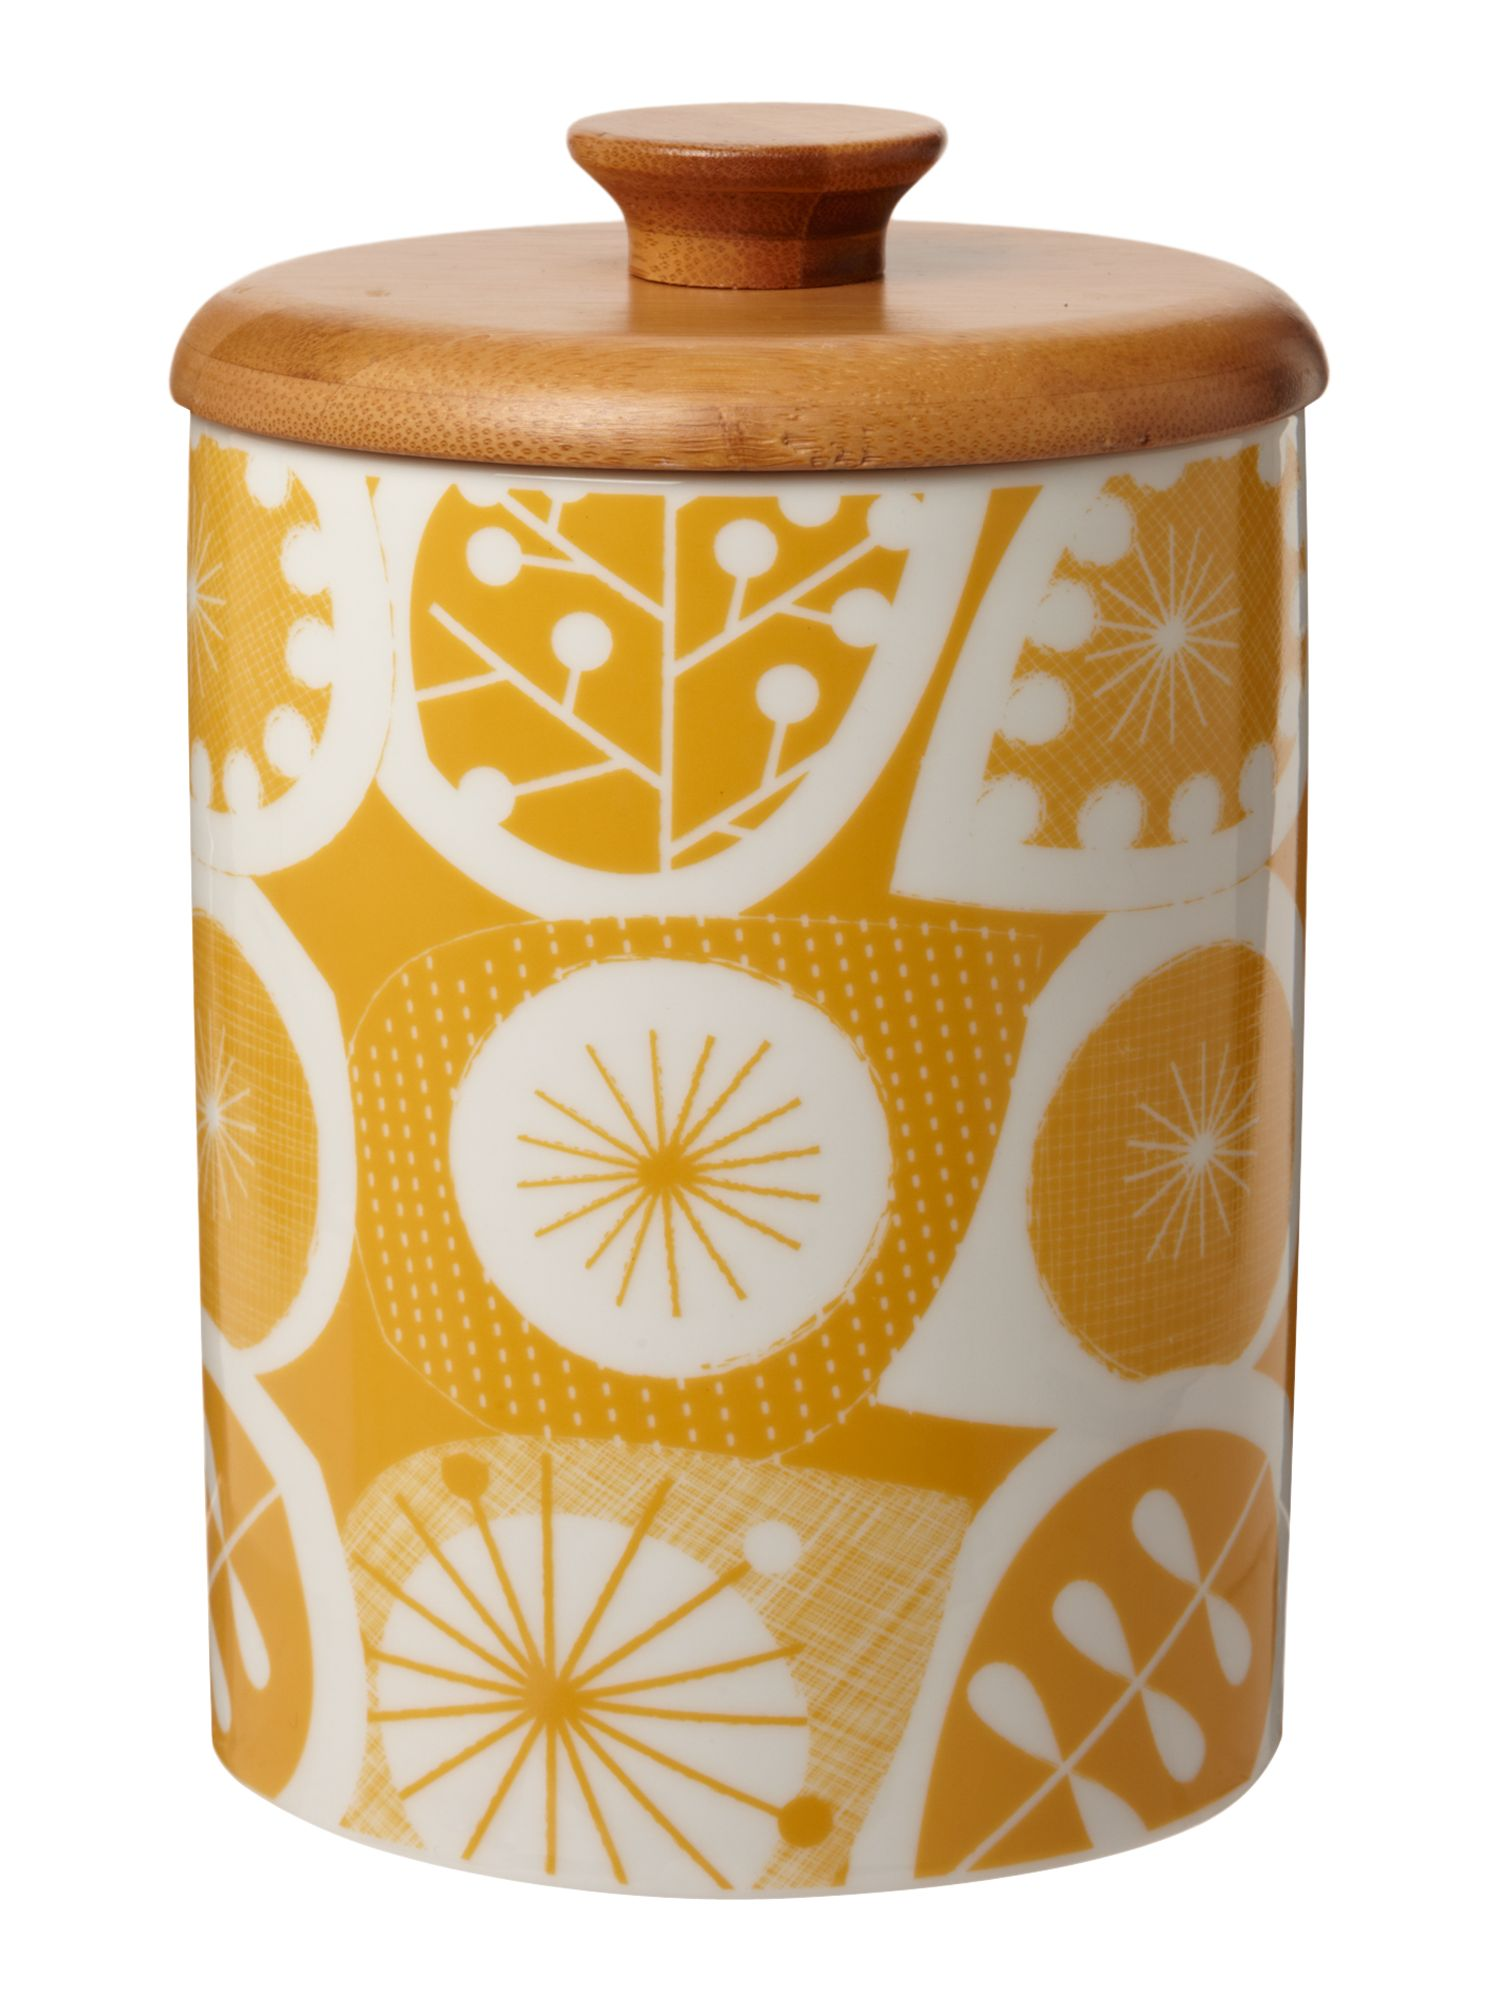 Seed pod storage jar, yellow